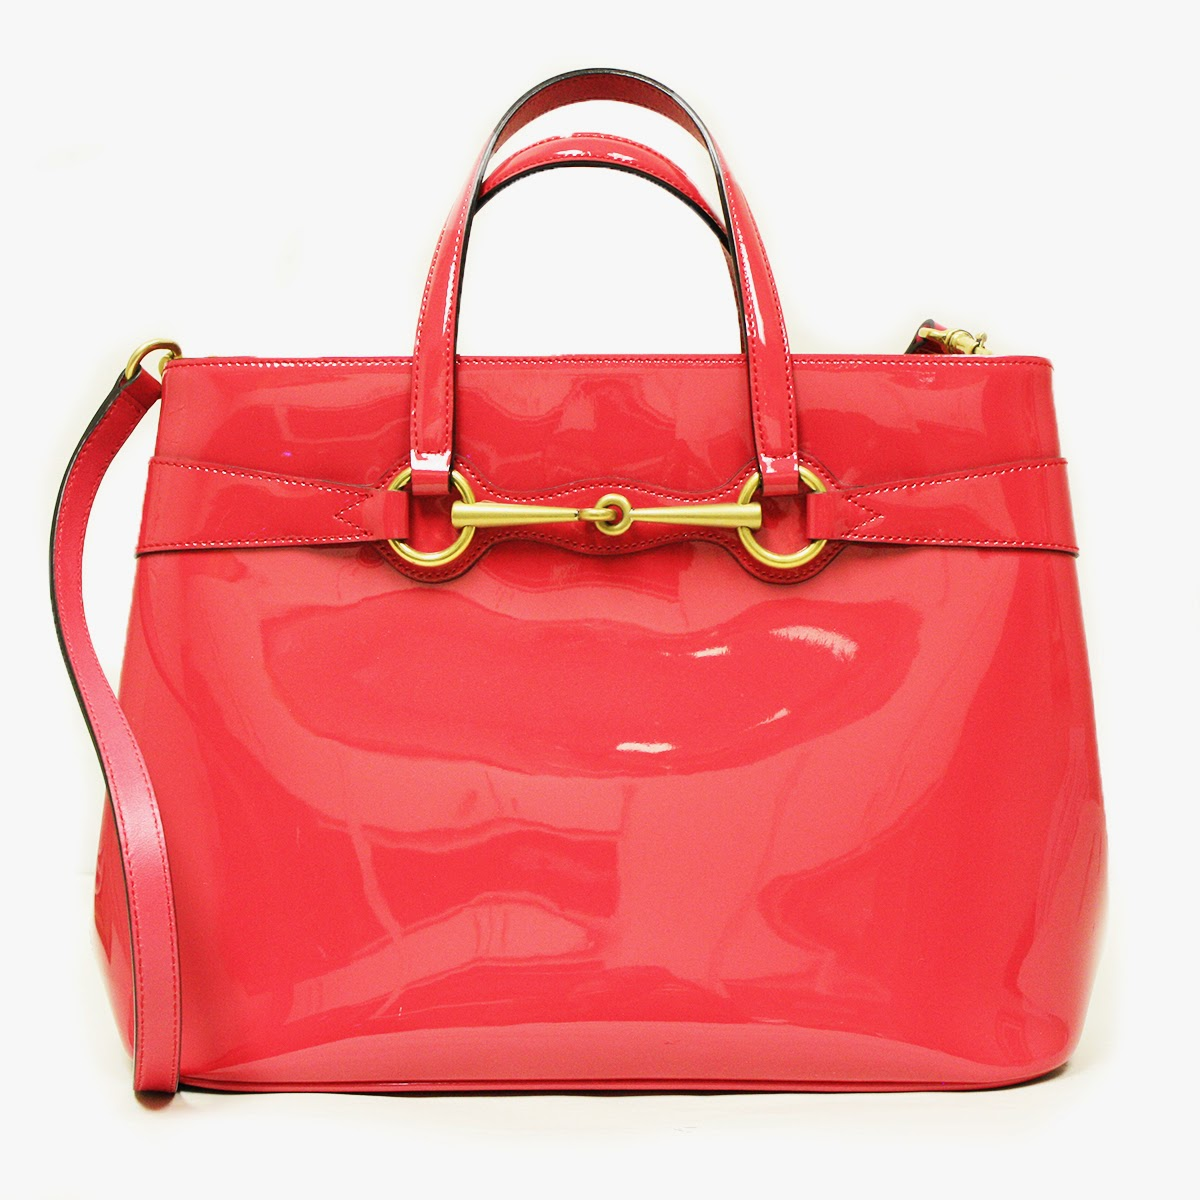 Gucci 319795 Horsebit Convertible Pink Patent Leather Large Tote Bag 319795